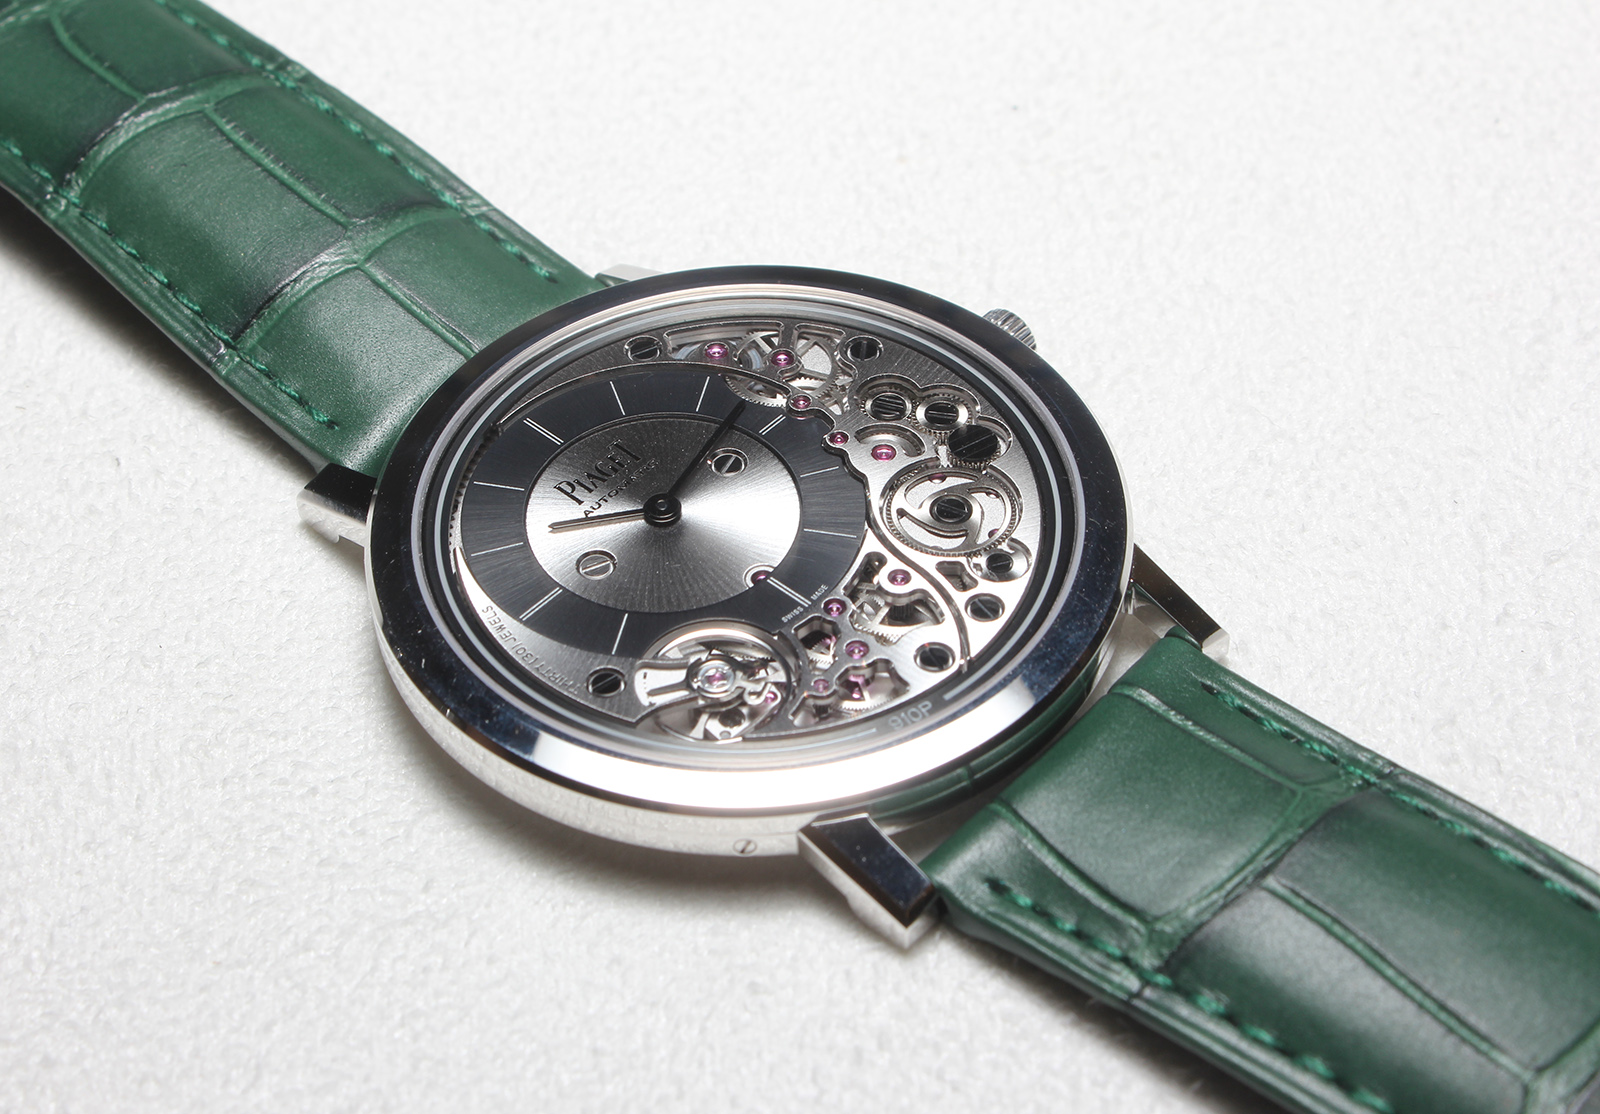 Piaget Altiplano Ultimate Automatic 910P 3